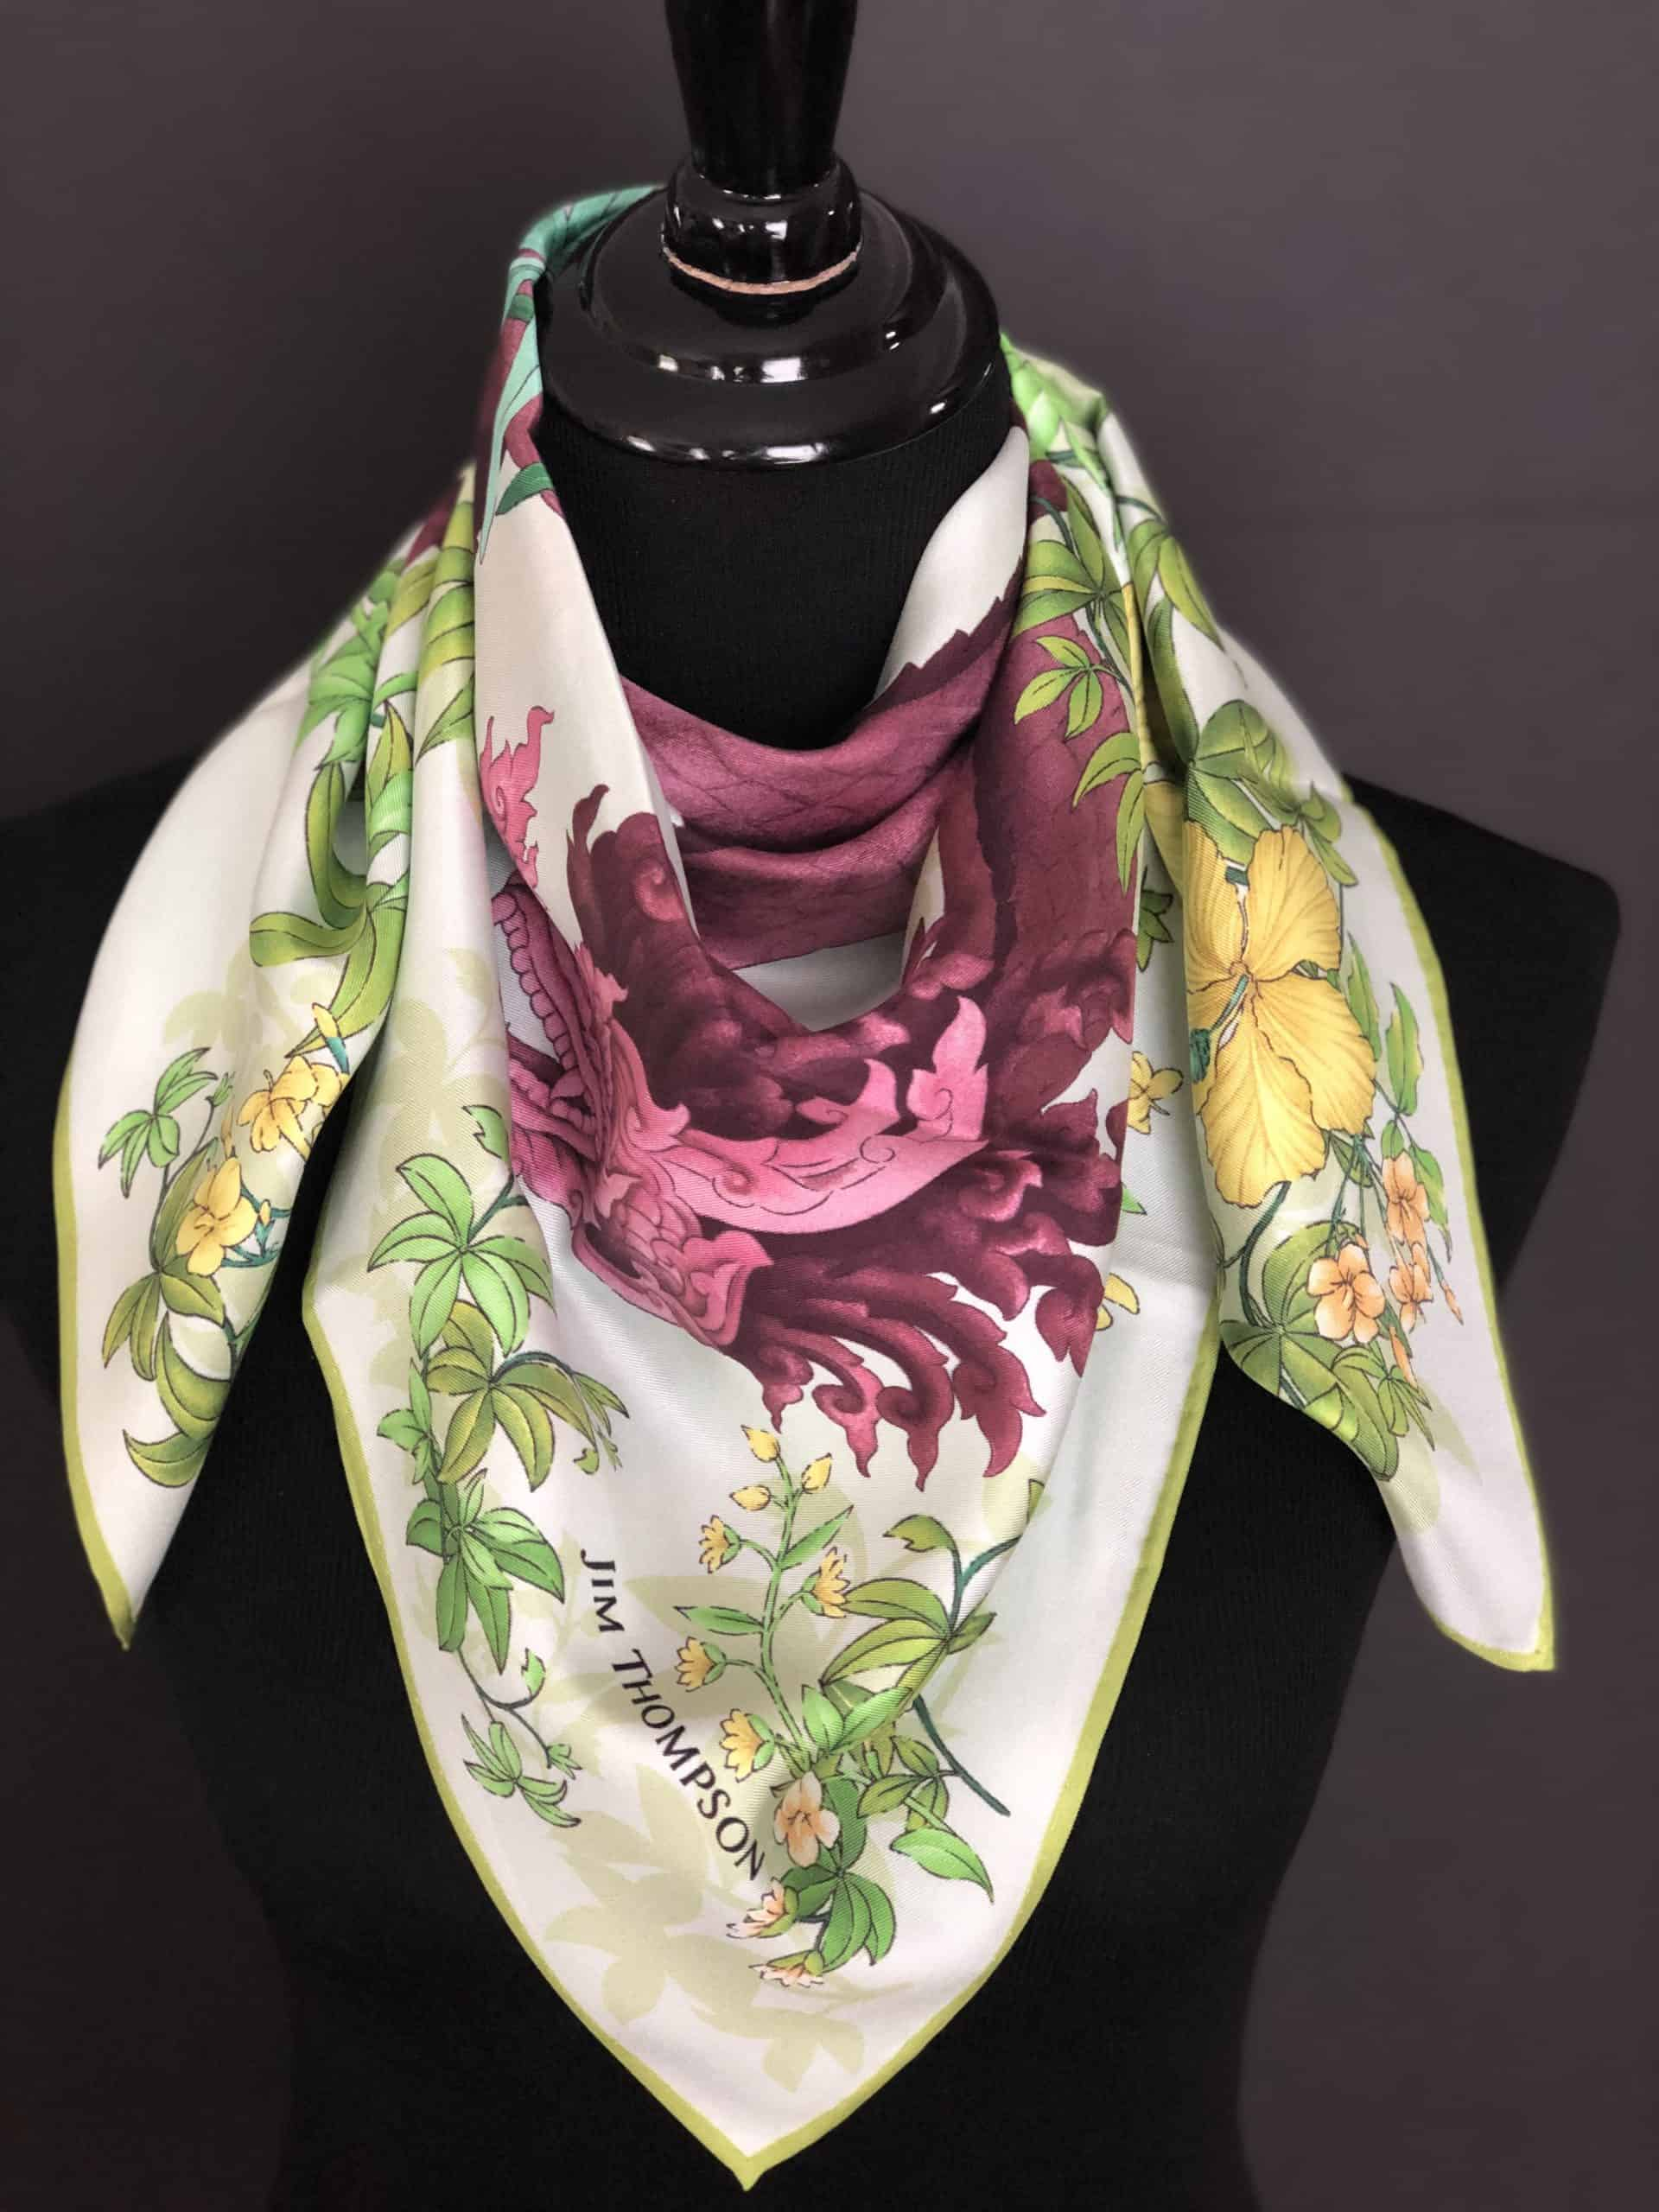 Cashmere and Pearls, Thai Silk Scarves